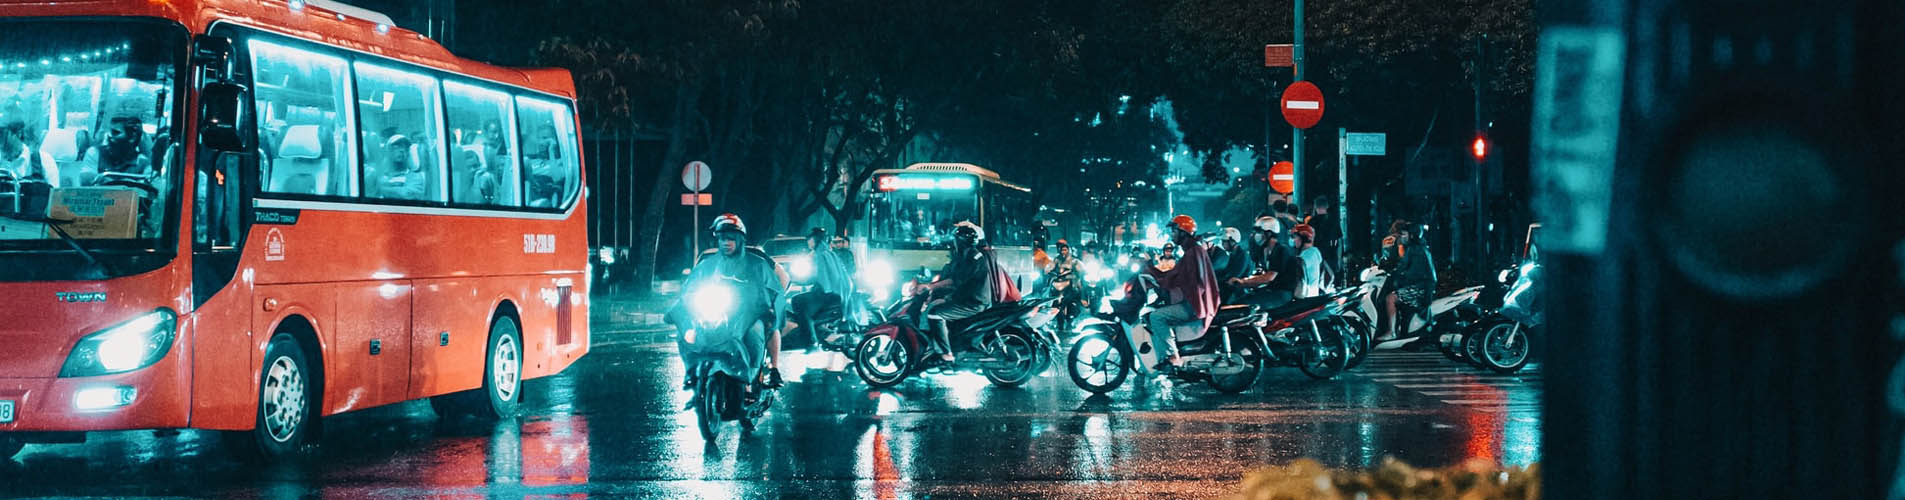 Get lost with the locals to the best places for Saigon nightlife